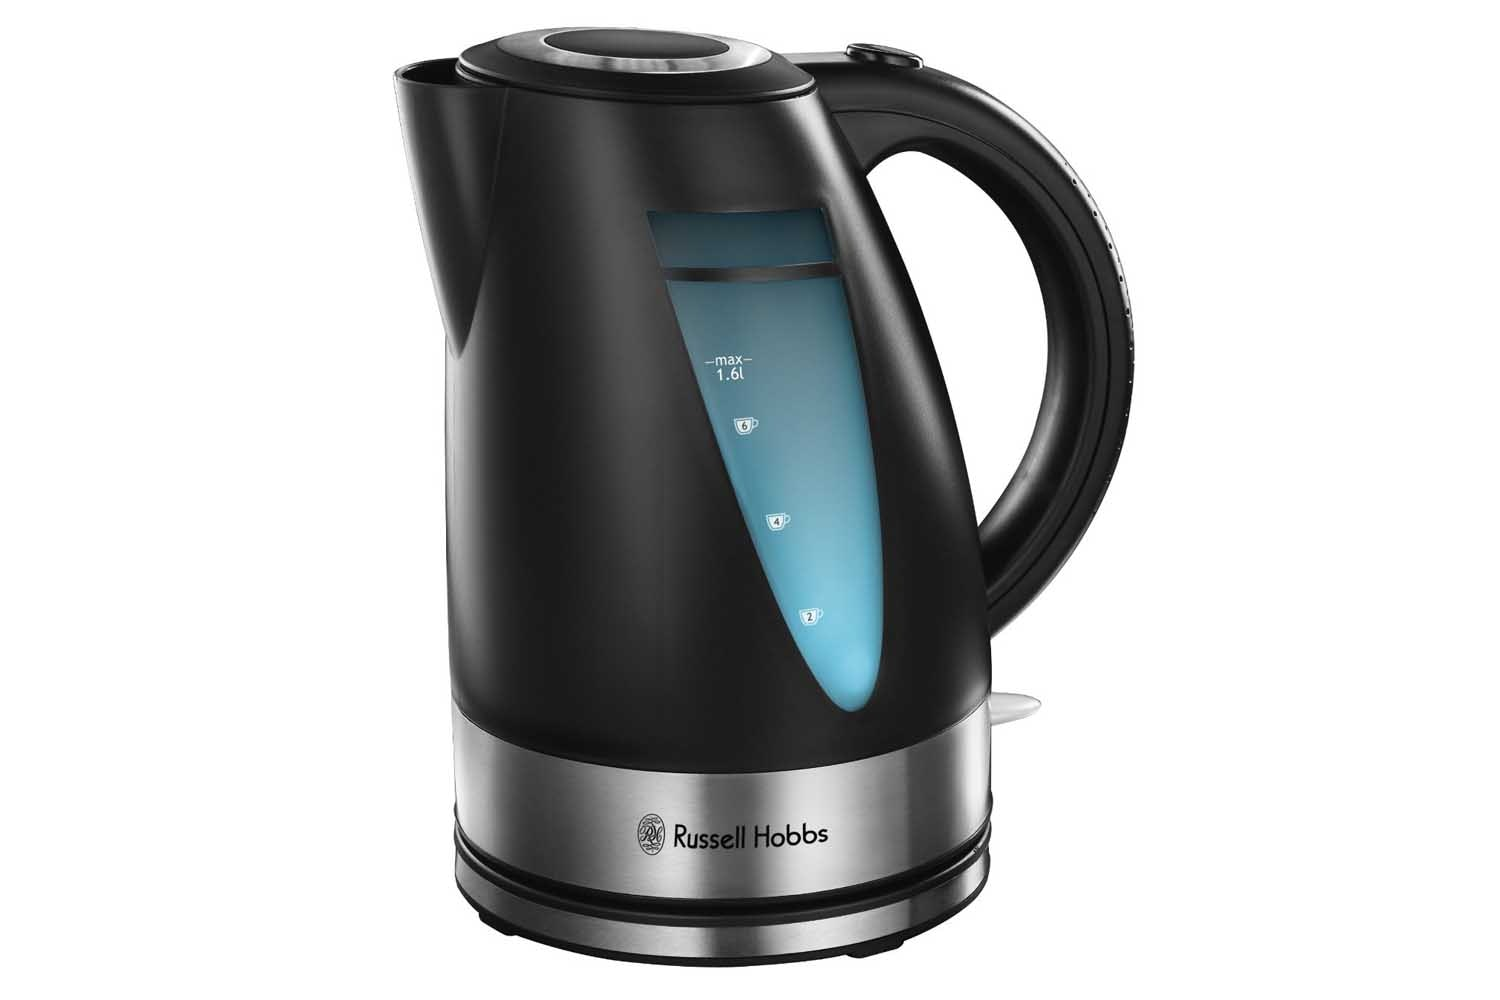 Russell Hobbs 1.6L Ebony Kettle | Black